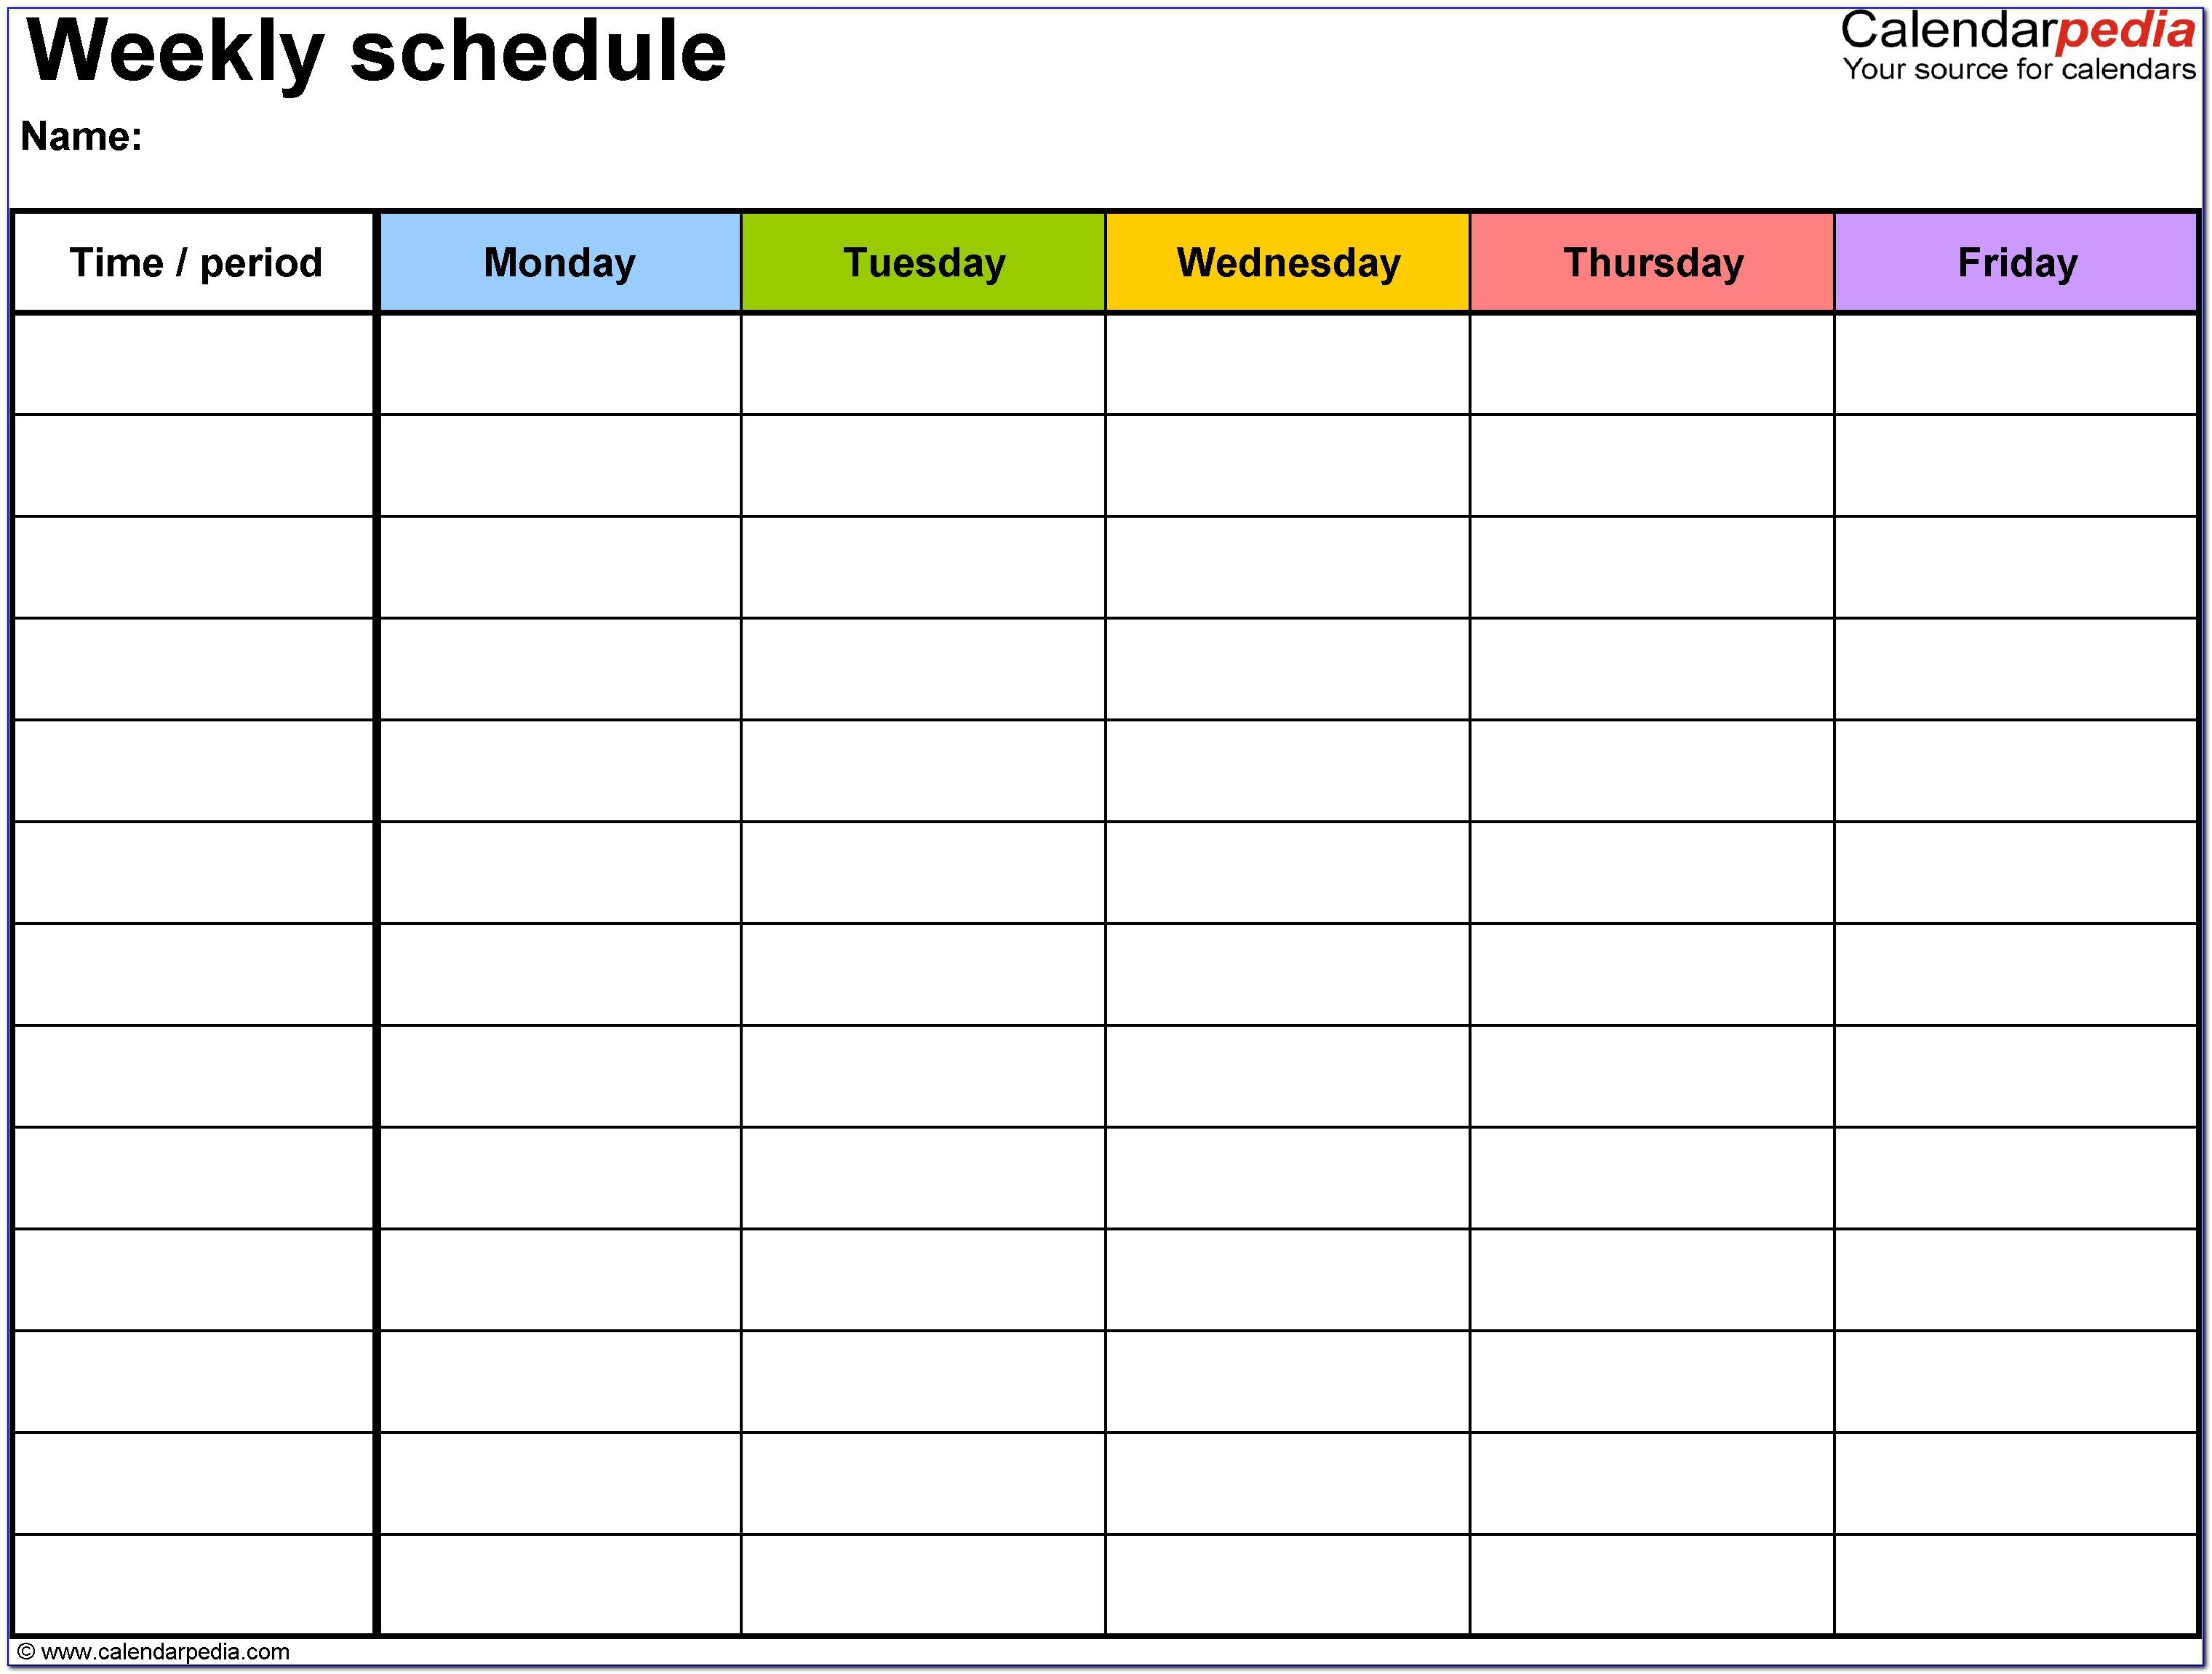 Weekly Calendar Schedule Template Free